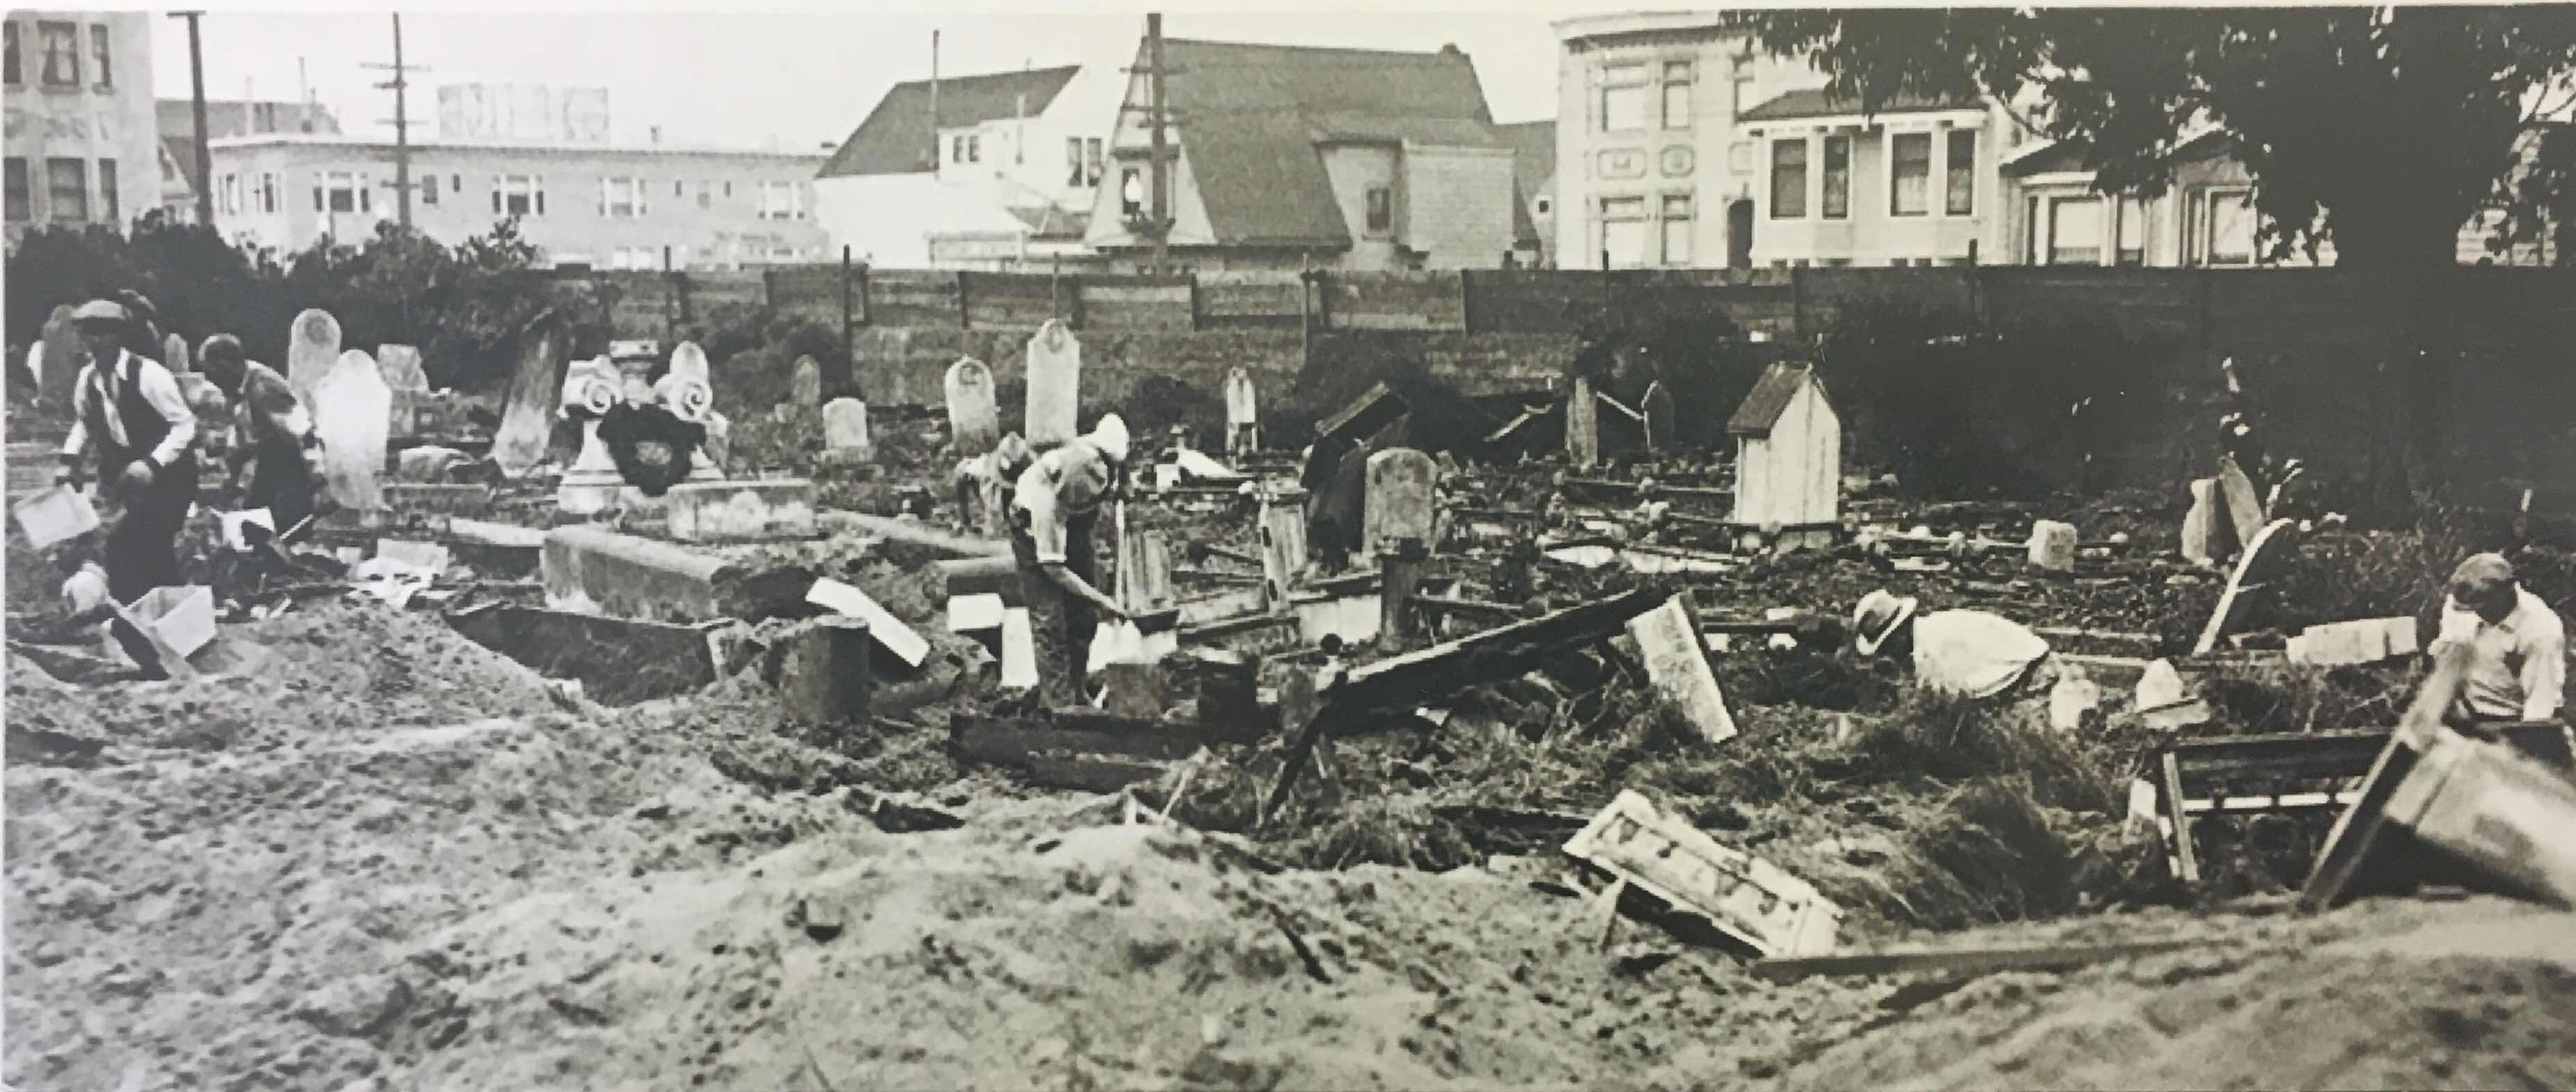 Workers remove bodies from the Odd Fellows cemetery. (Colma Historical Association)